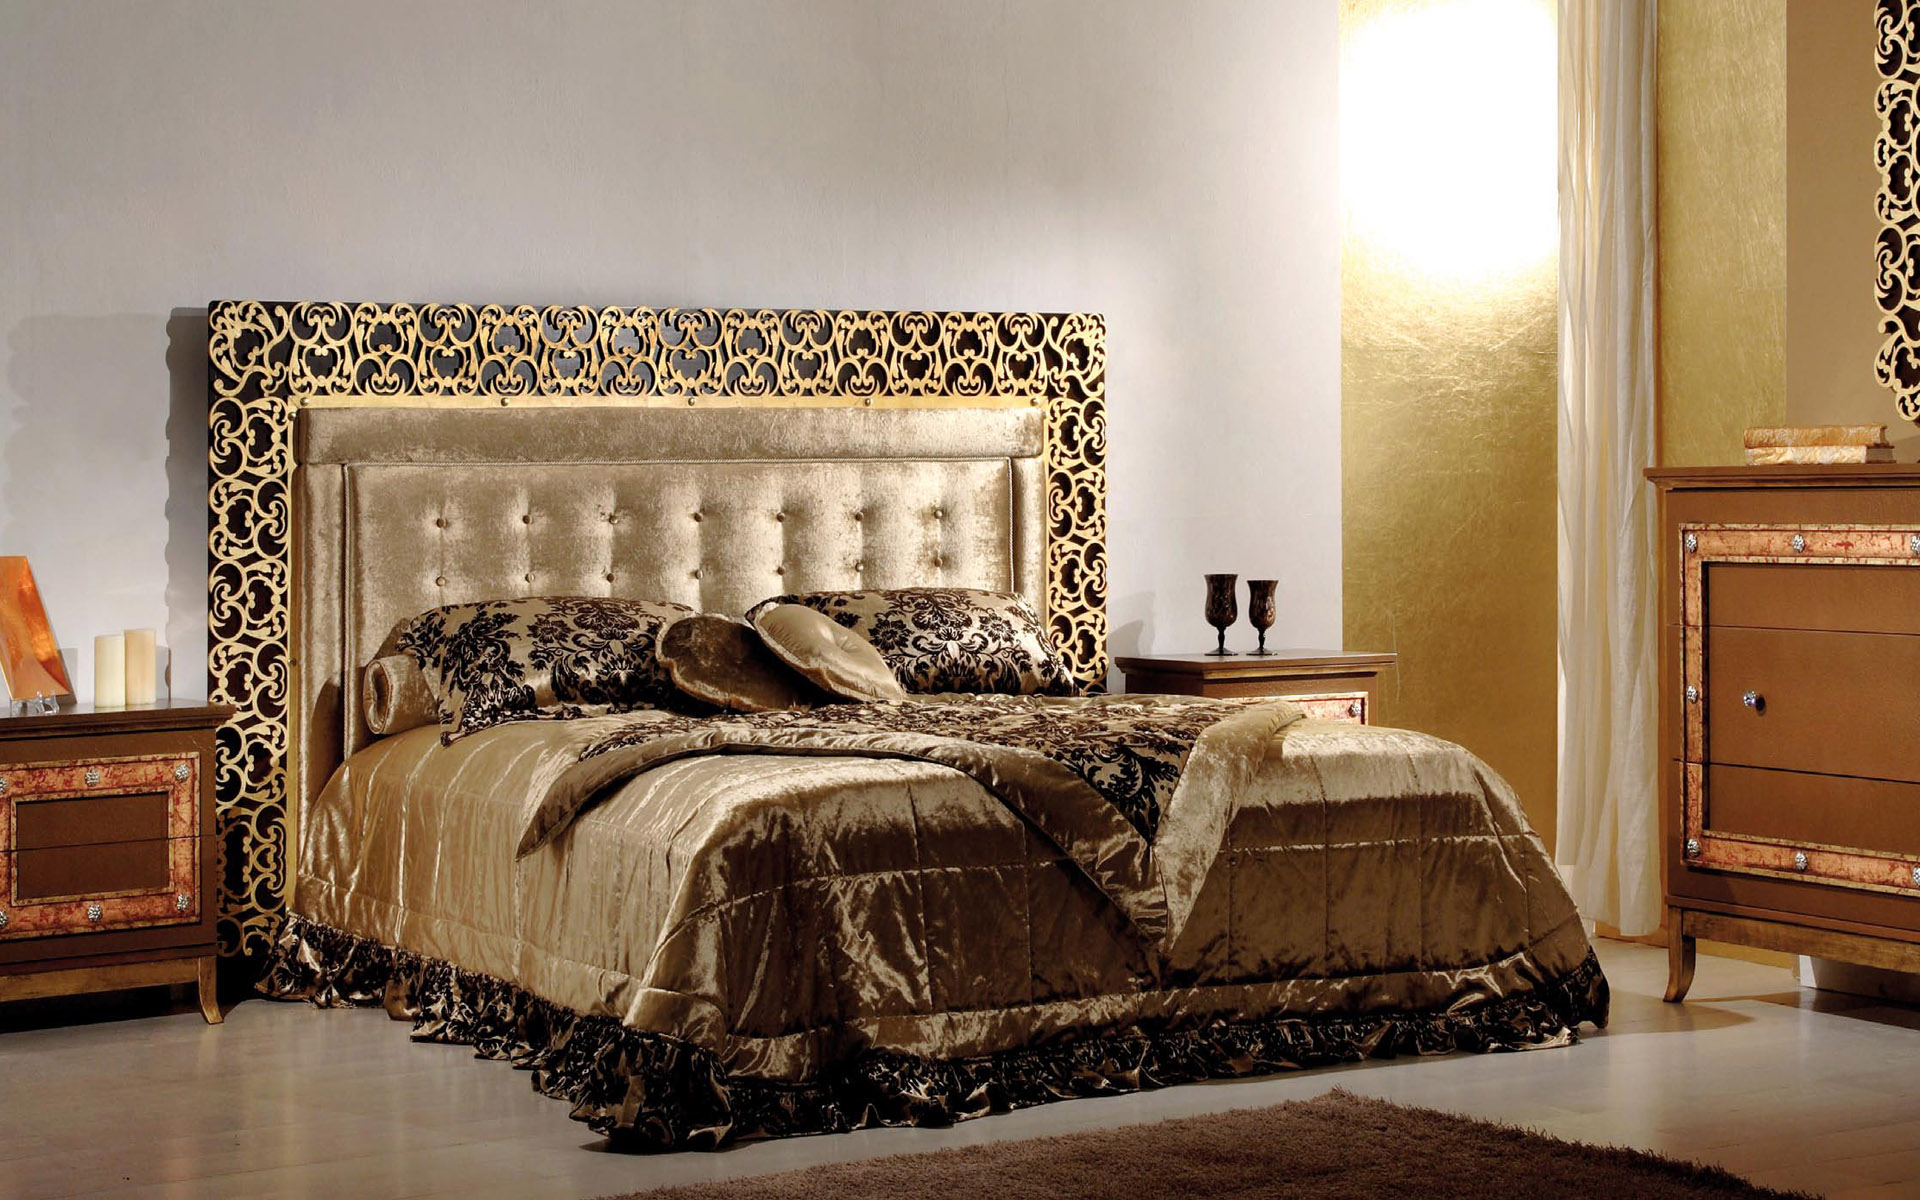 12 for Bedroom decorating ideas 2015 in pakistan